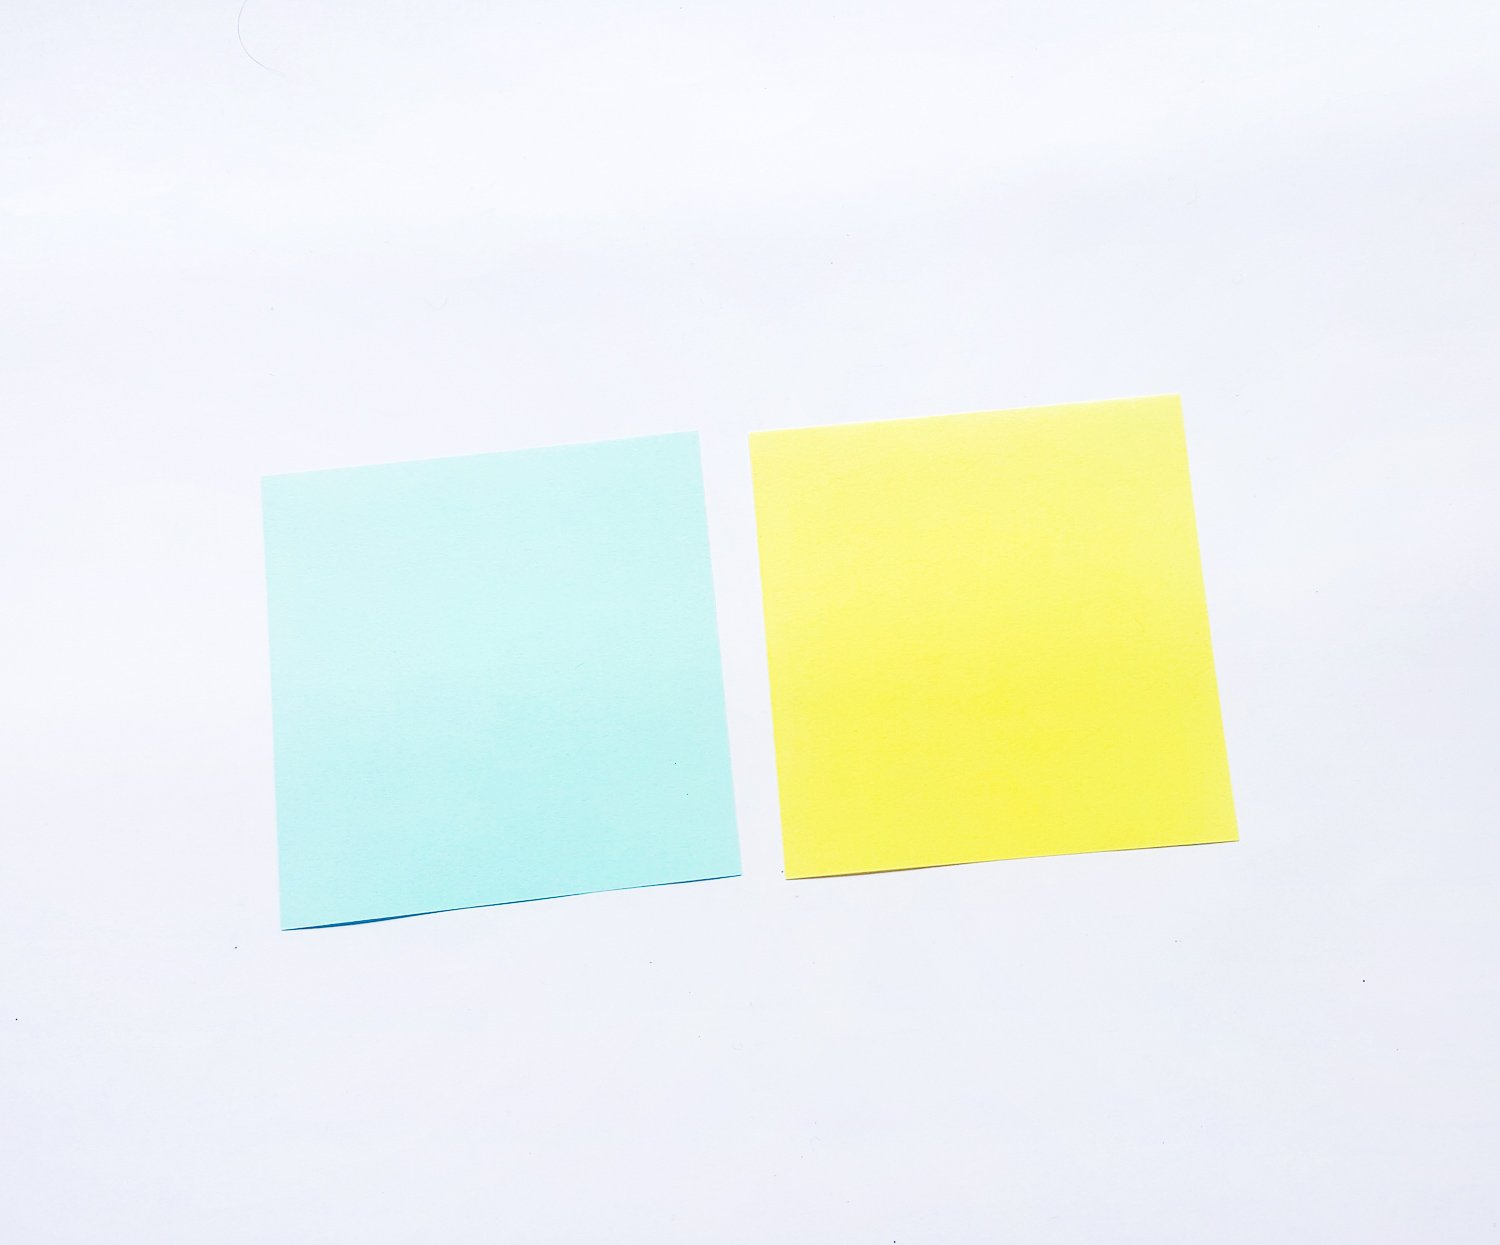 blue and yellow paper on a white background